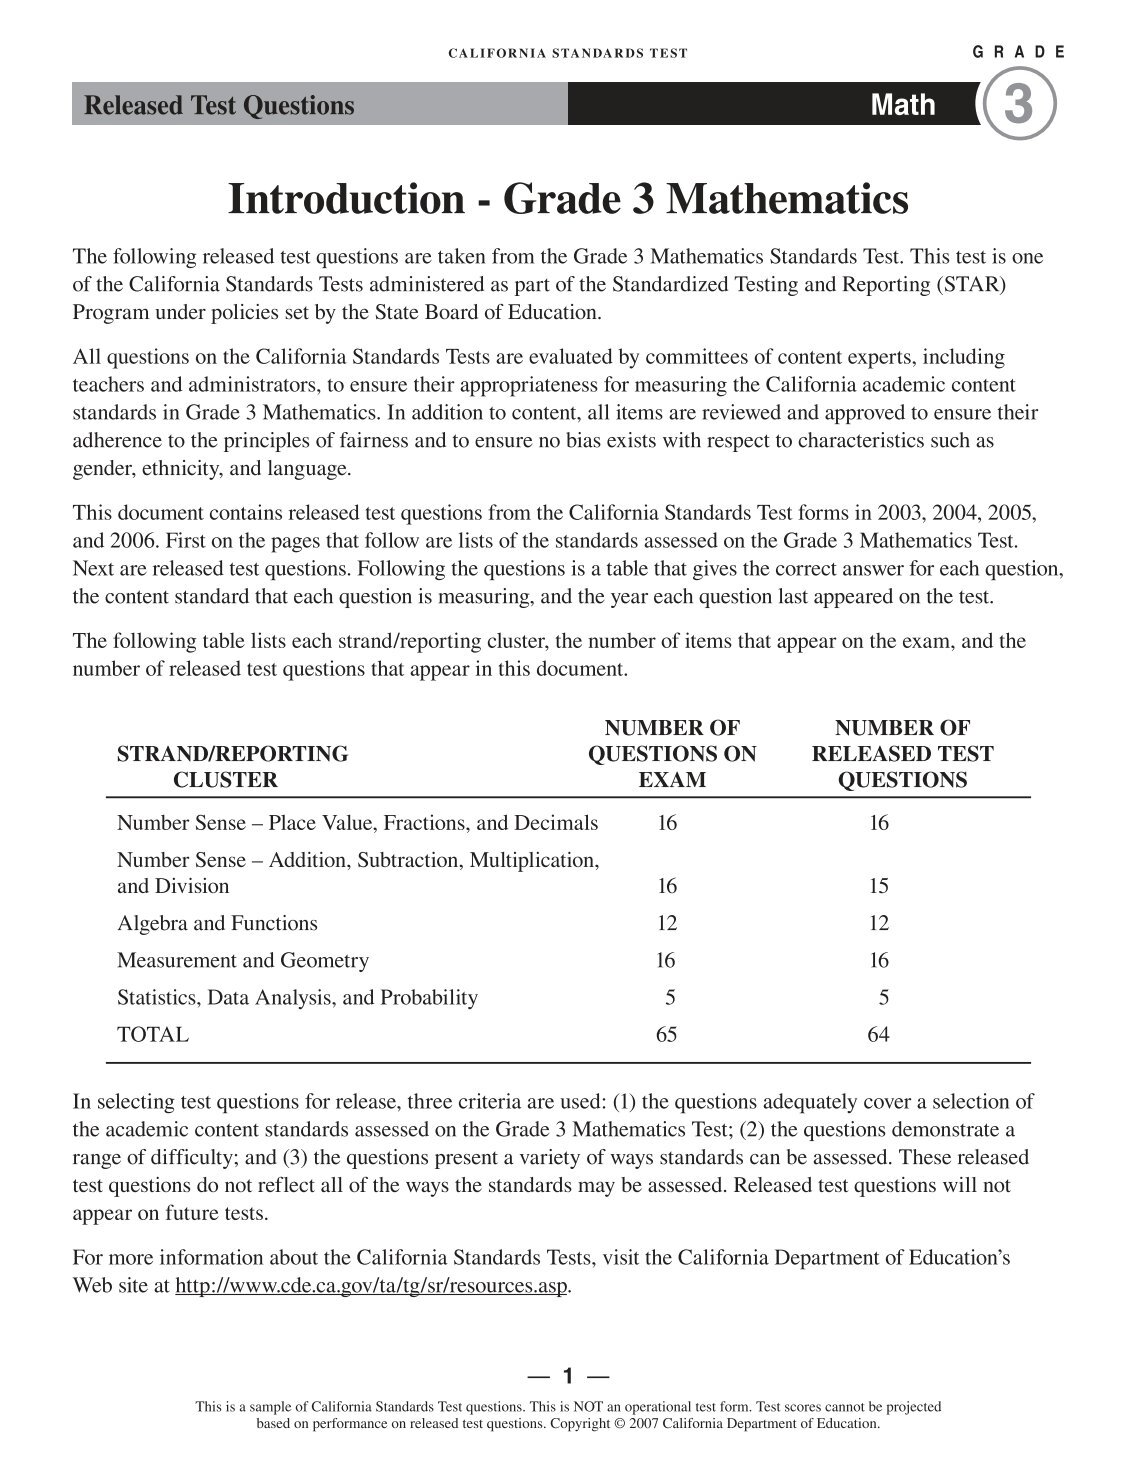 Worksheet Grade 3 Maths Test math test for kids addition worksheets analogy released staar writing 4th grade 3 questions newsroom released